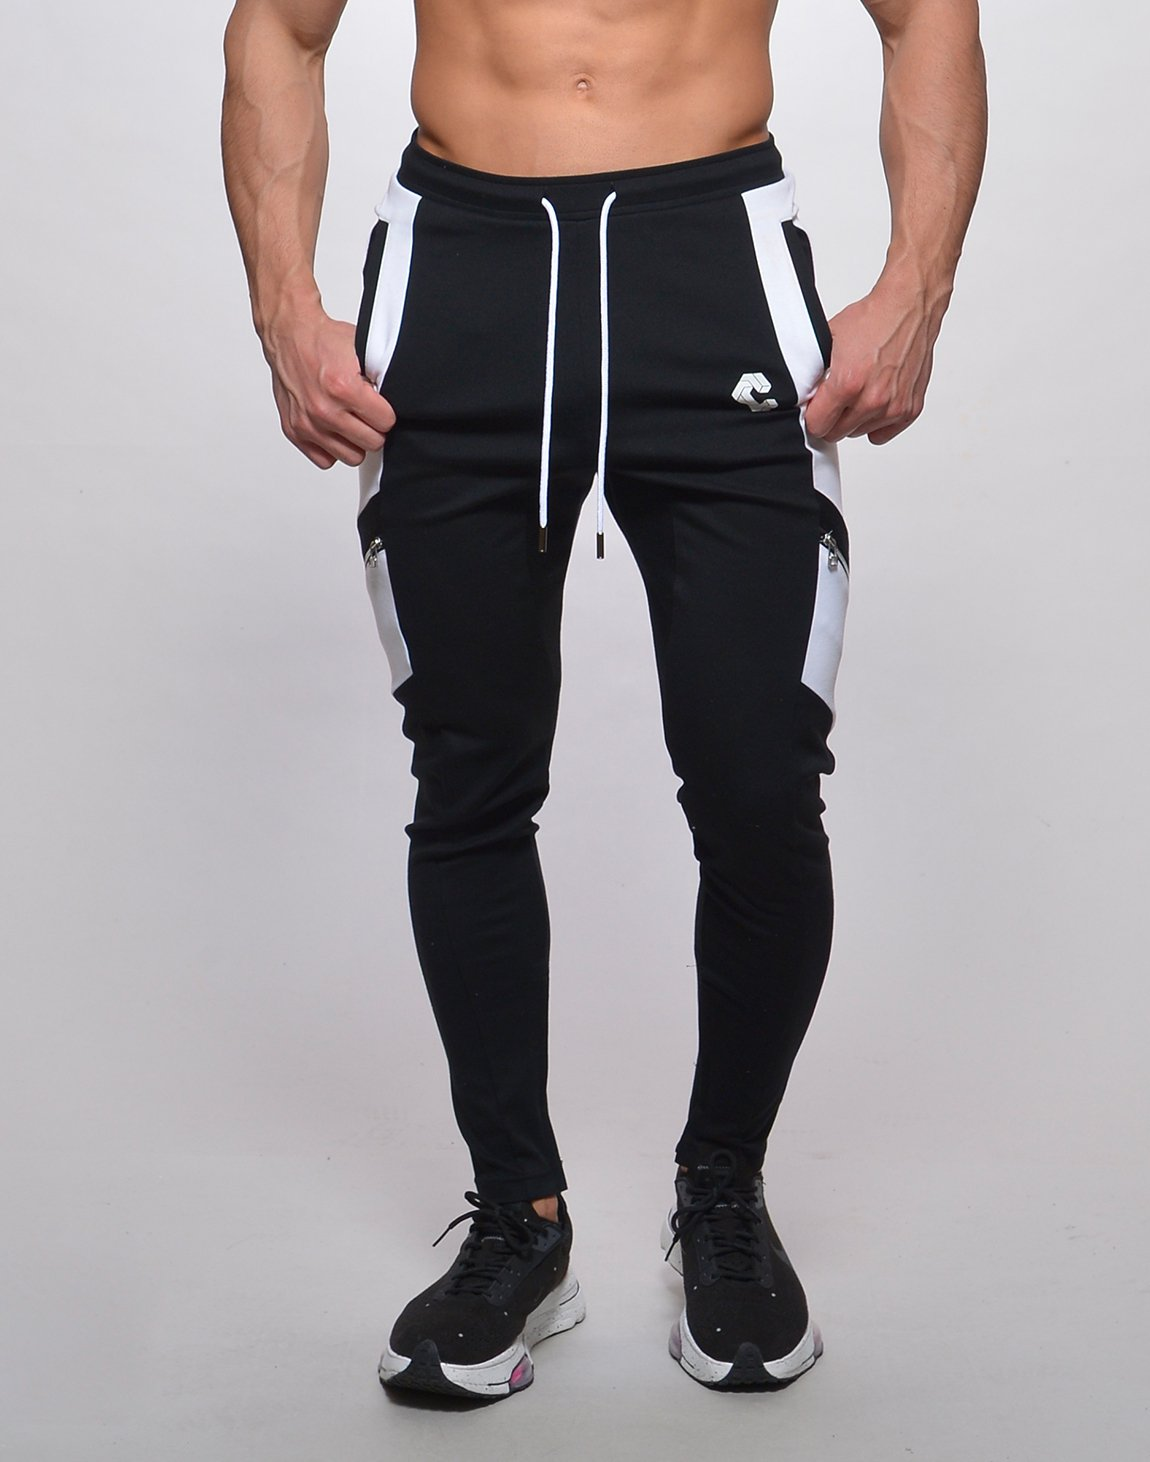 <img class='new_mark_img1' src='https://img.shop-pro.jp/img/new/icons1.gif' style='border:none;display:inline;margin:0px;padding:0px;width:auto;' />CRONOS SLANTED LINE ZIP PANTS【BLACK】